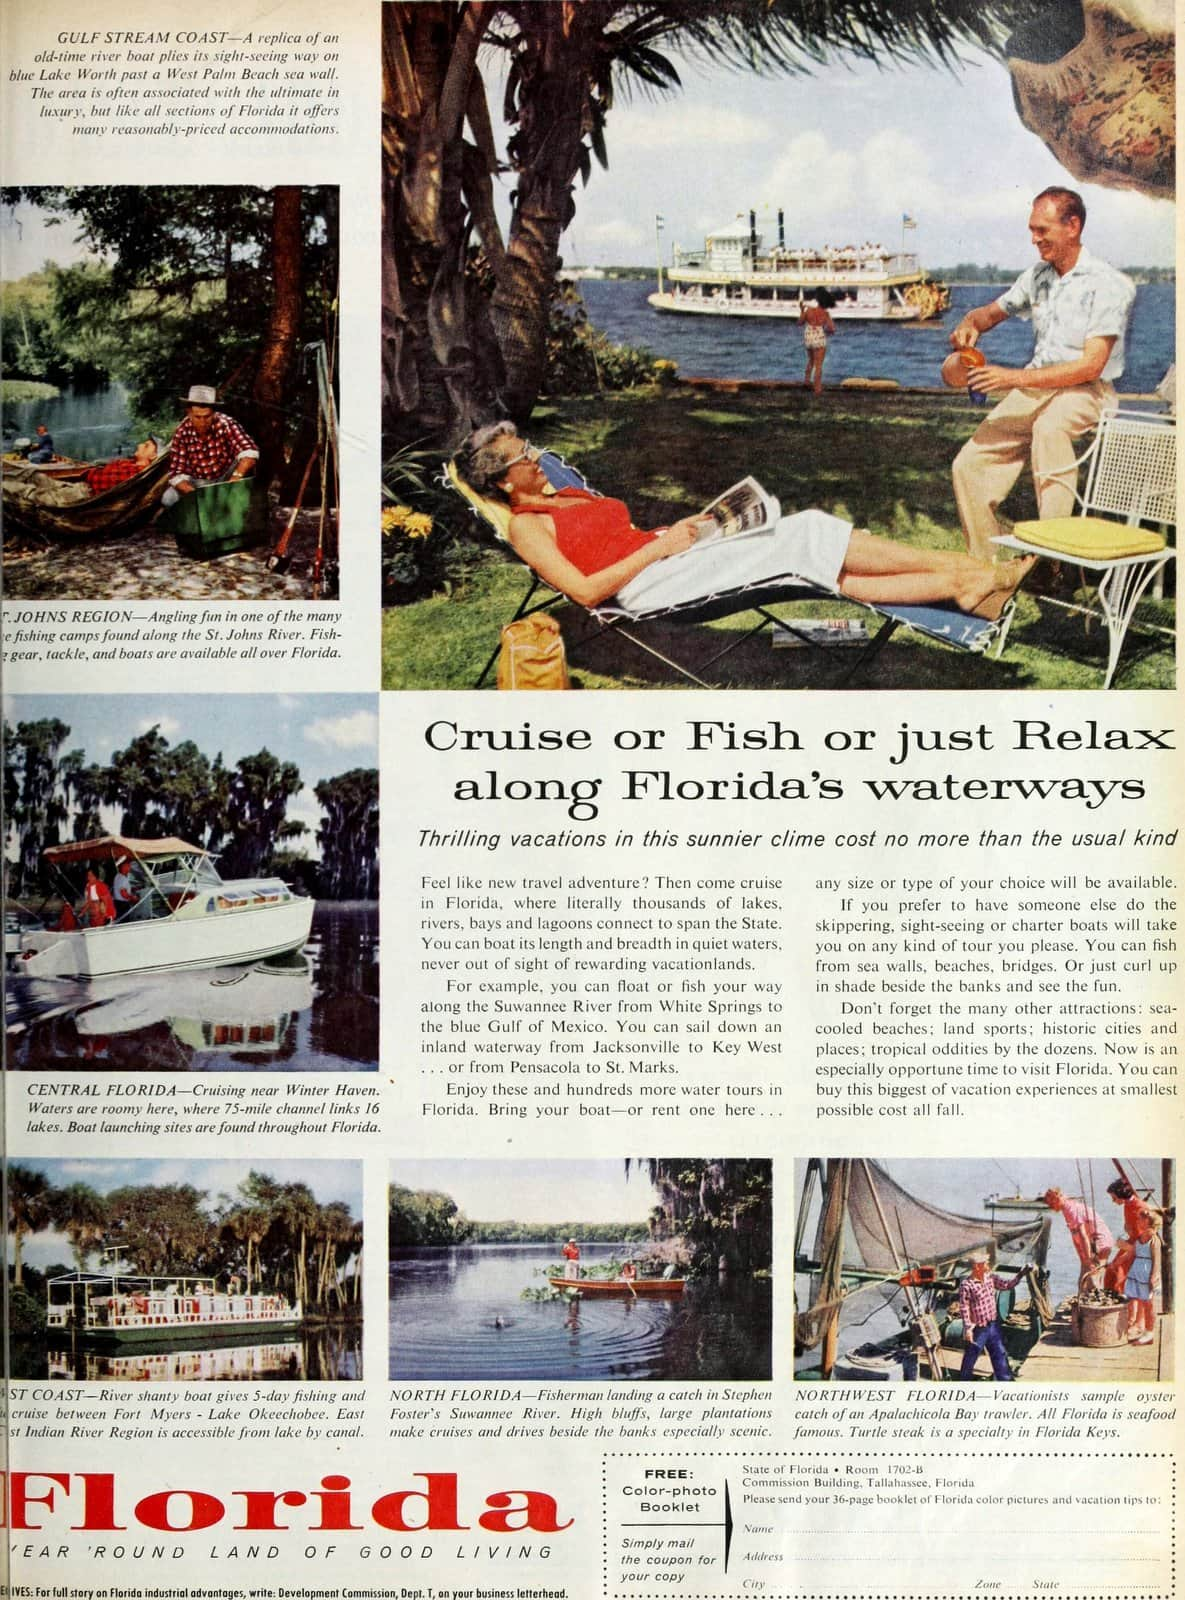 Cruise or fish or relax along vintage fifties Florida's waterways (1957)